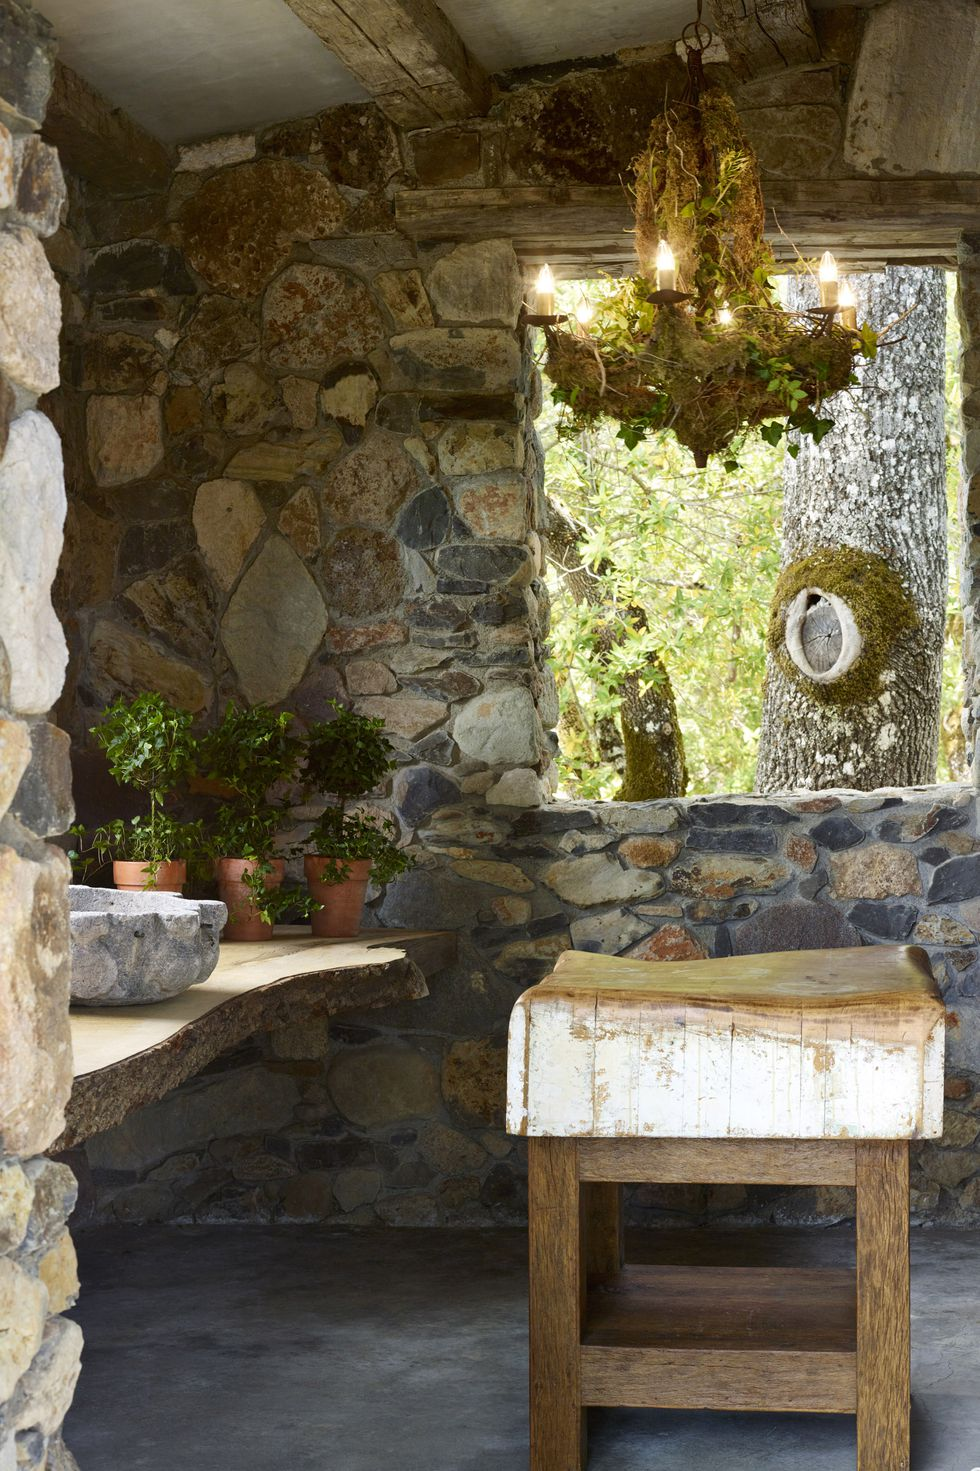 Stone kitchen with plants and chandelier and wood countertop